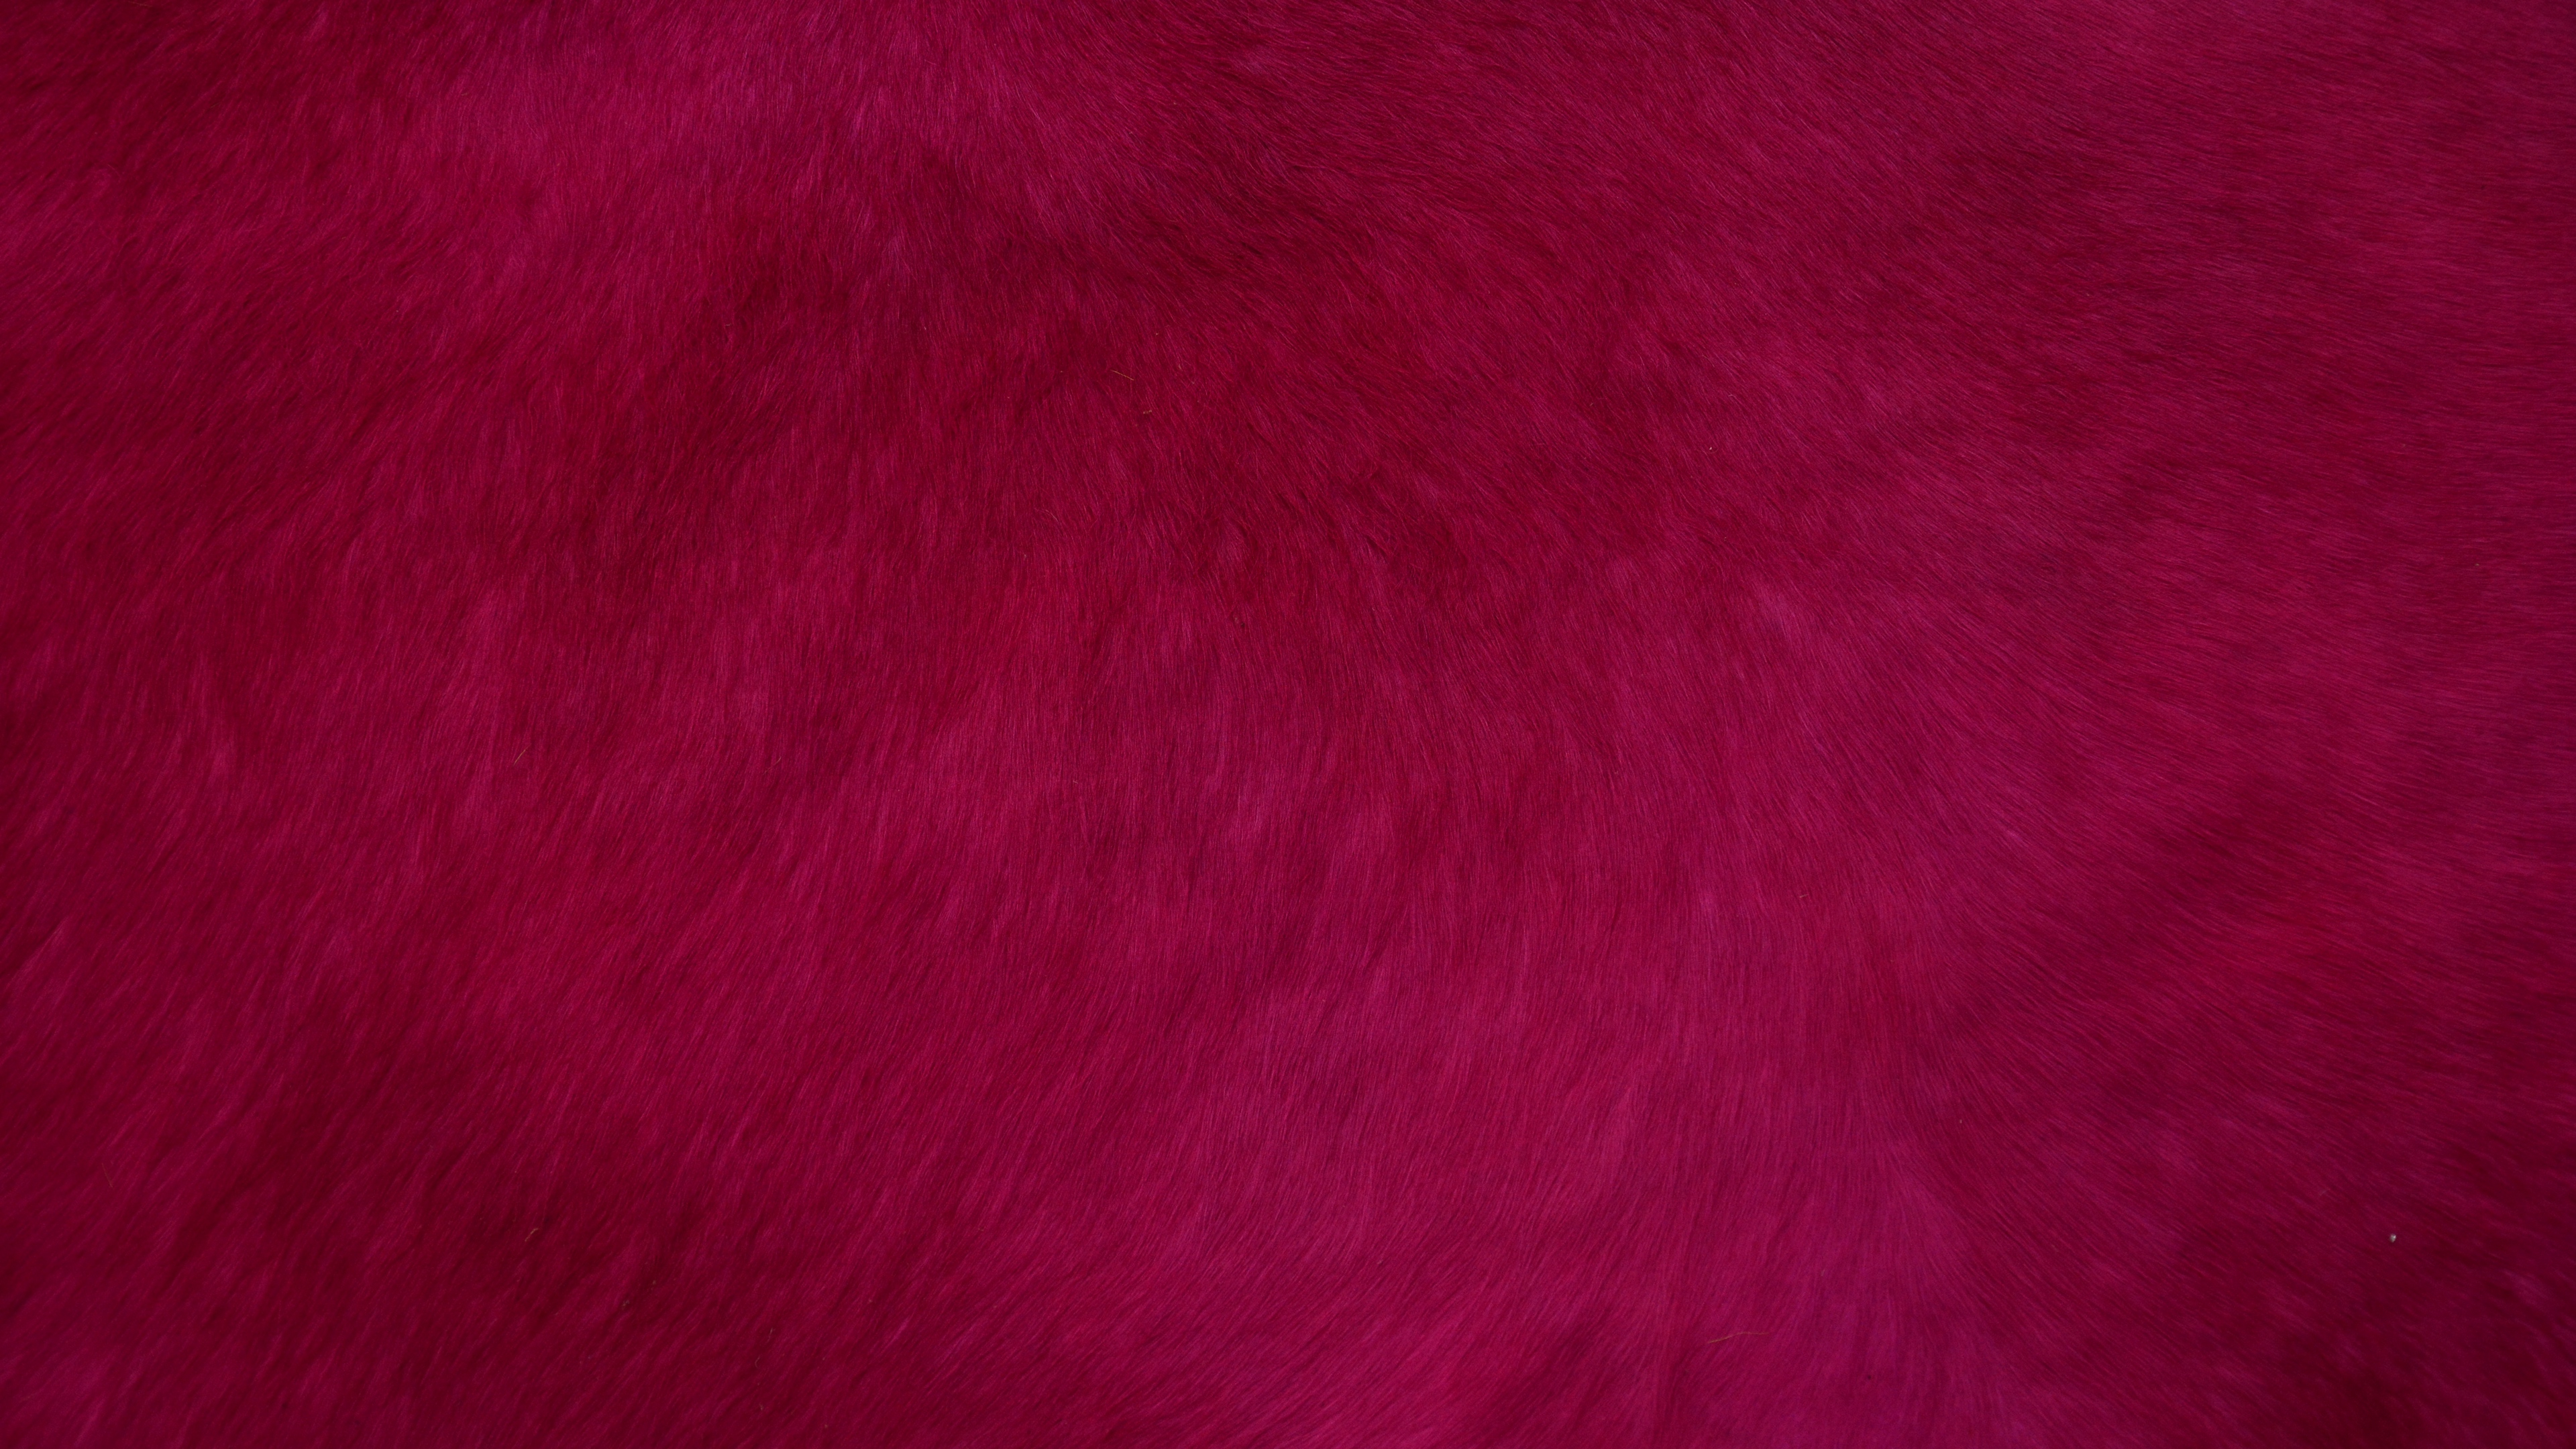 fur texture red surface 4k 1536097809 - fur, texture, red, surface 4k - Texture, red, fur